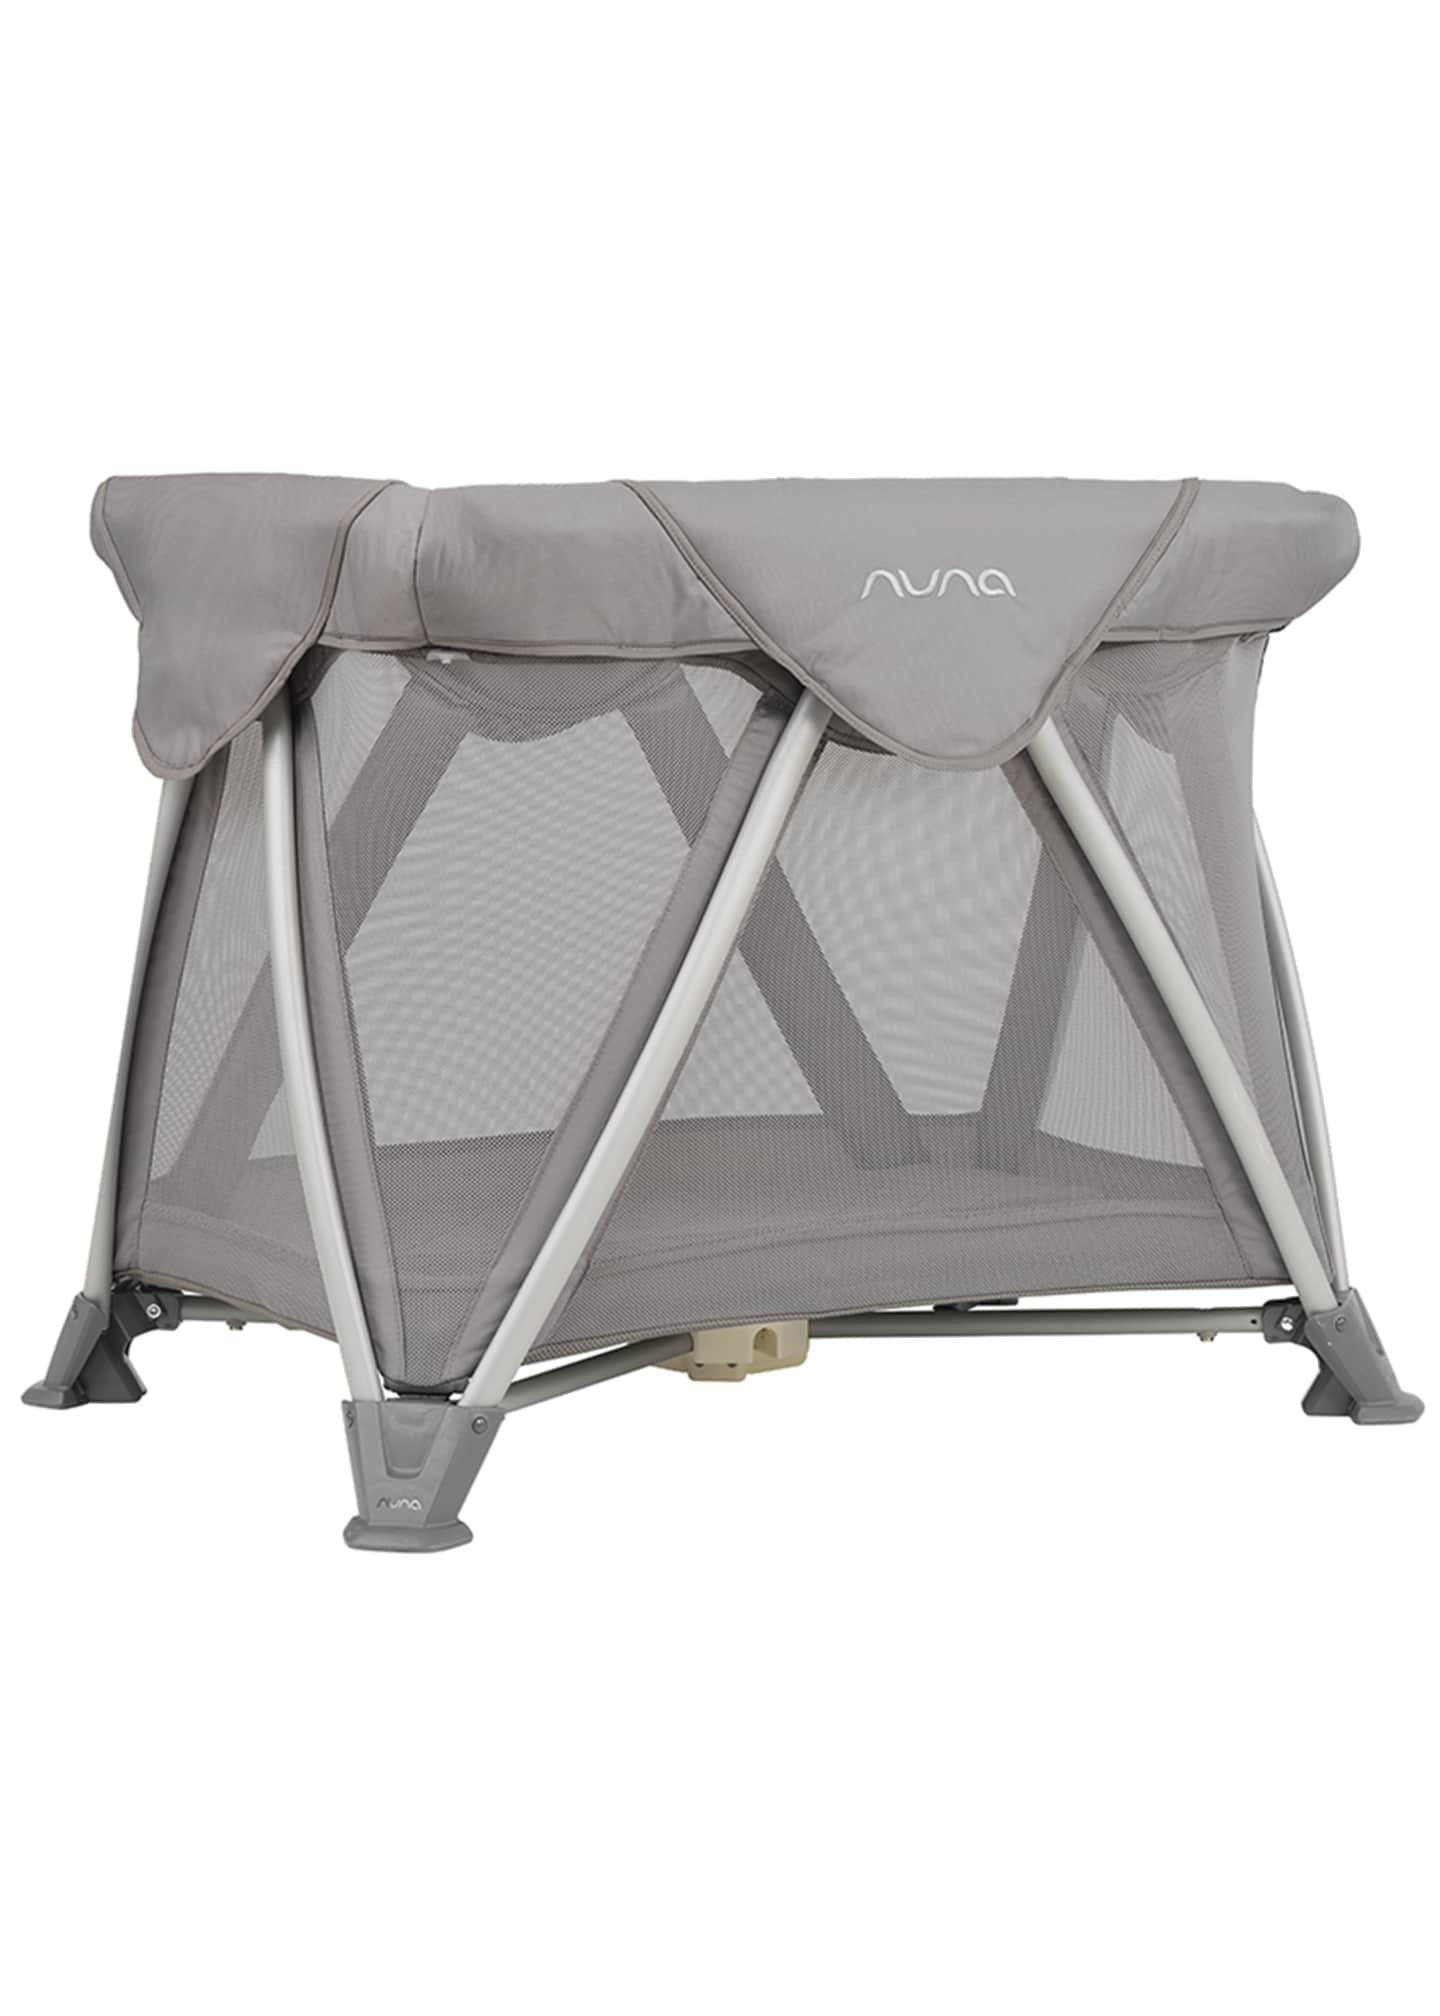 Nuna SENA Mini Aire Bassinet and Playard